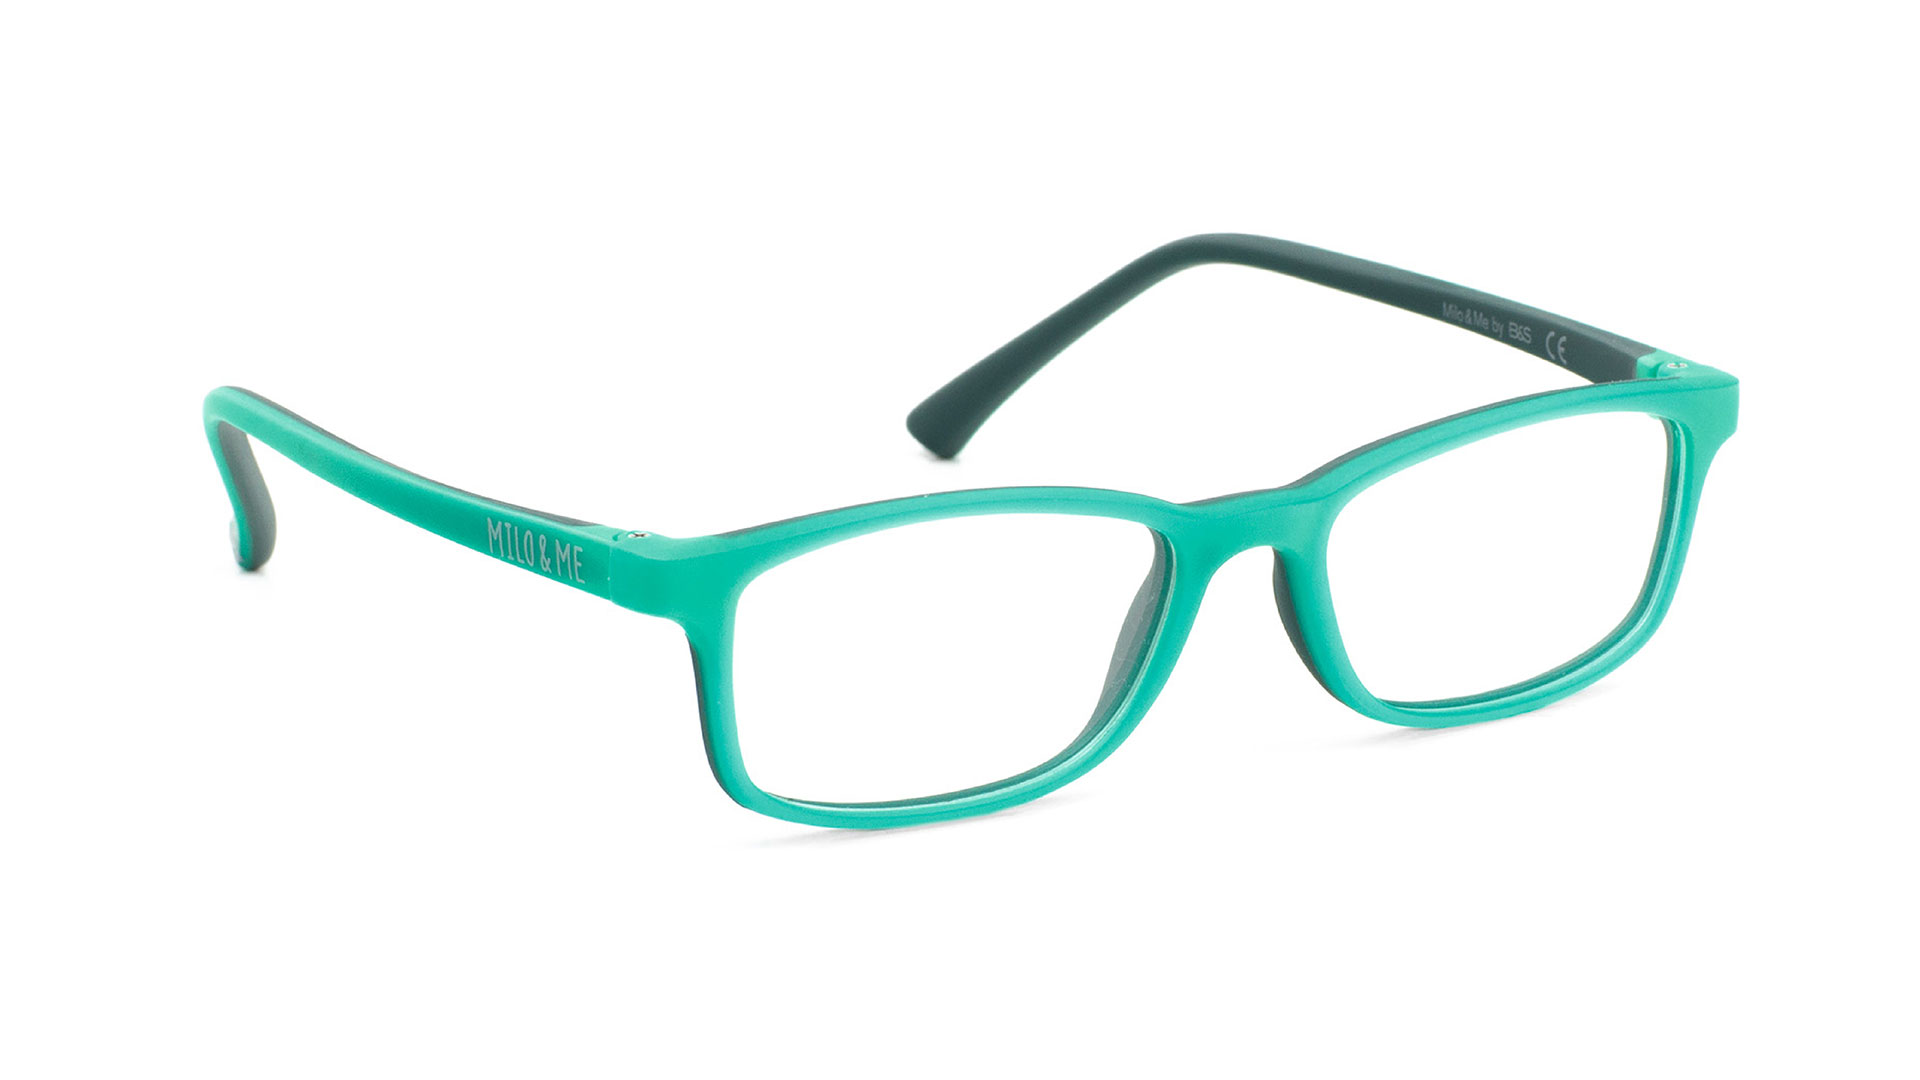 Light Green Dark Green - Milo & Me Eyewear - Optimum RX Lens Specialists